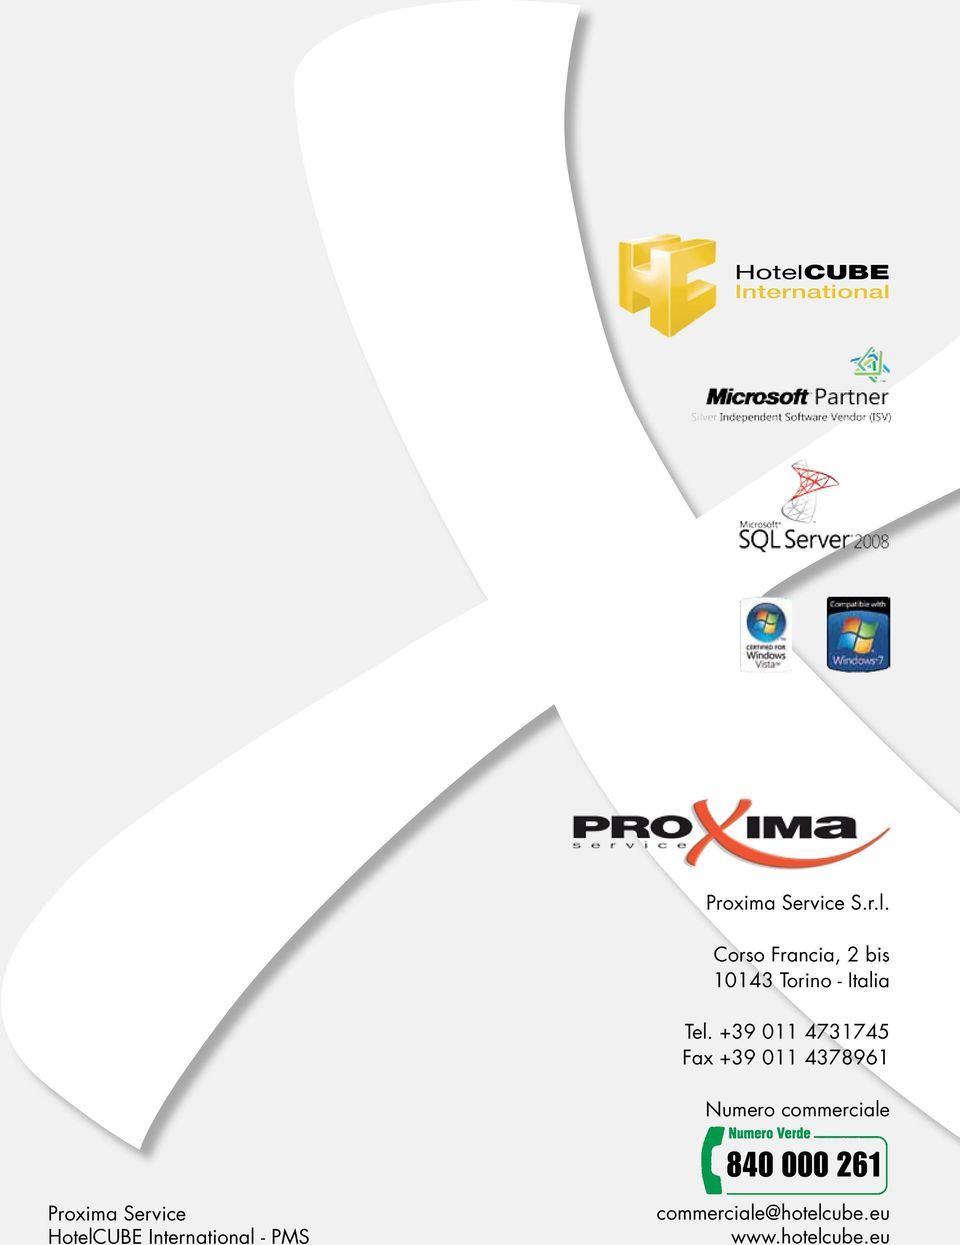 261 Proxima Service HotelCUBE International - PMS